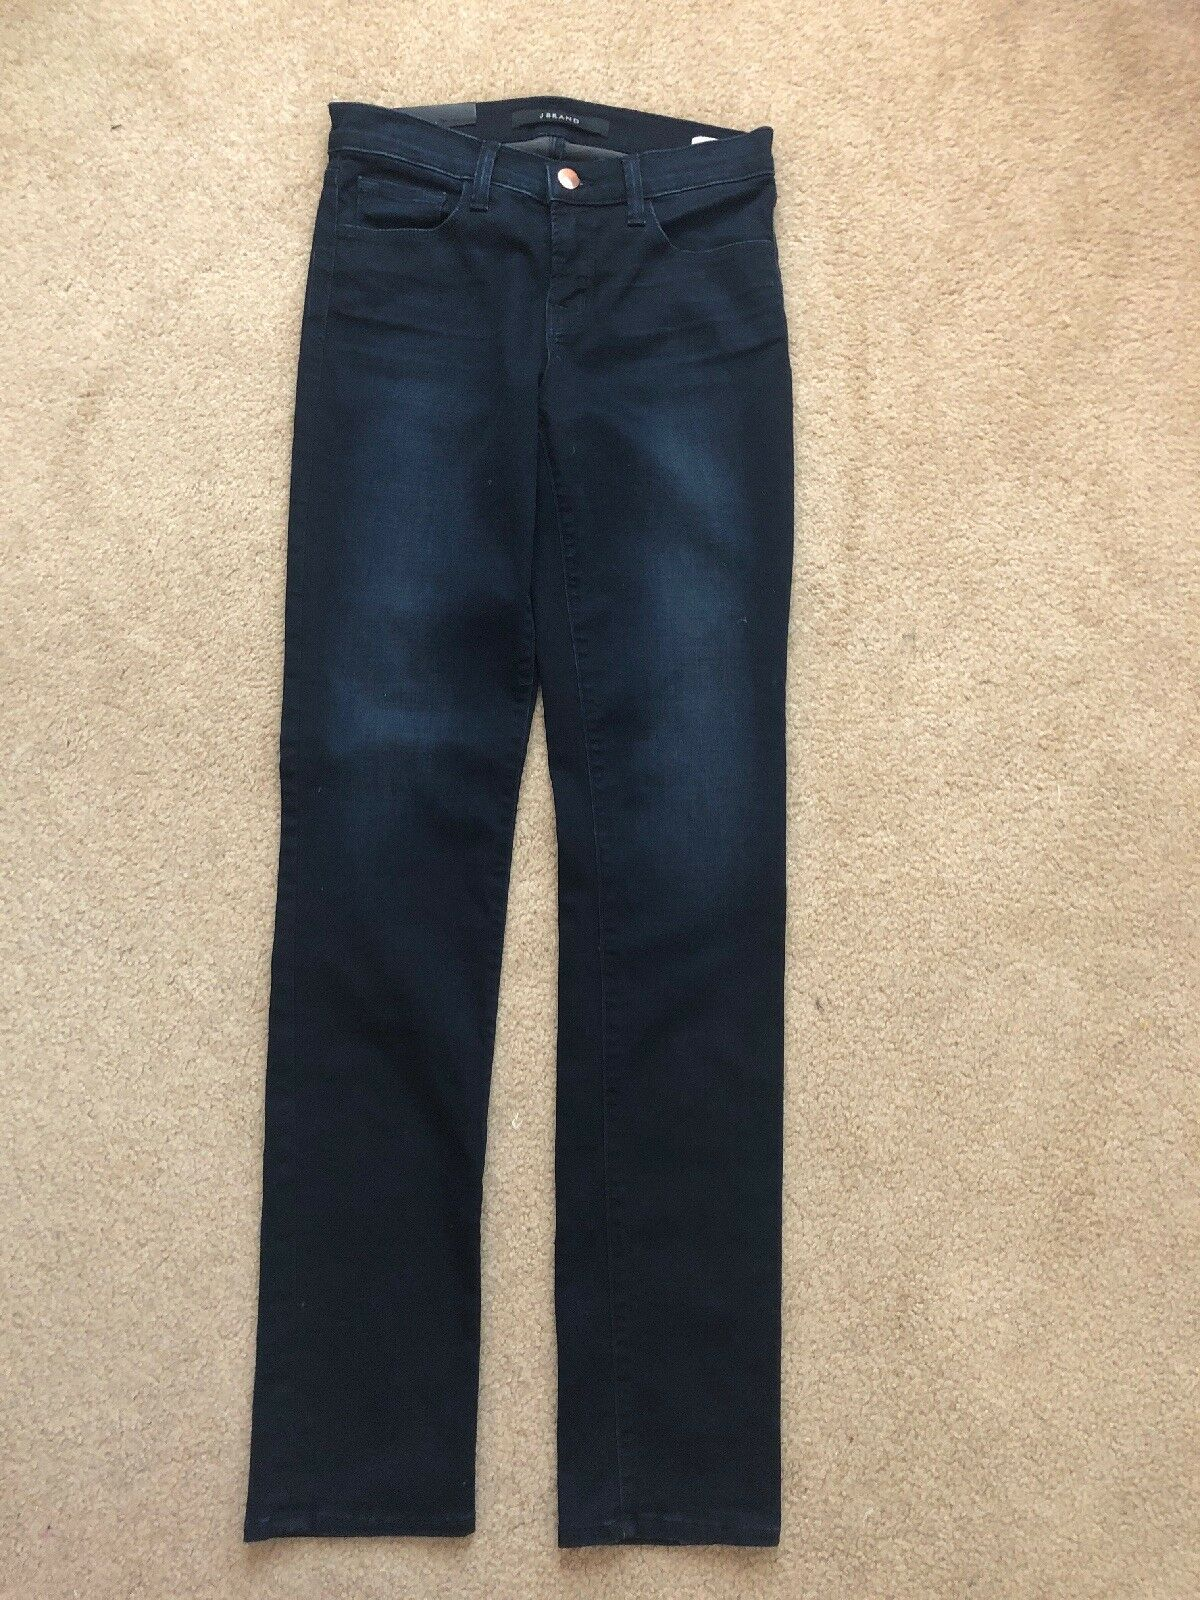 Brand New Authentic J Brand Jeans Mid Rise Rail Womens Size 26